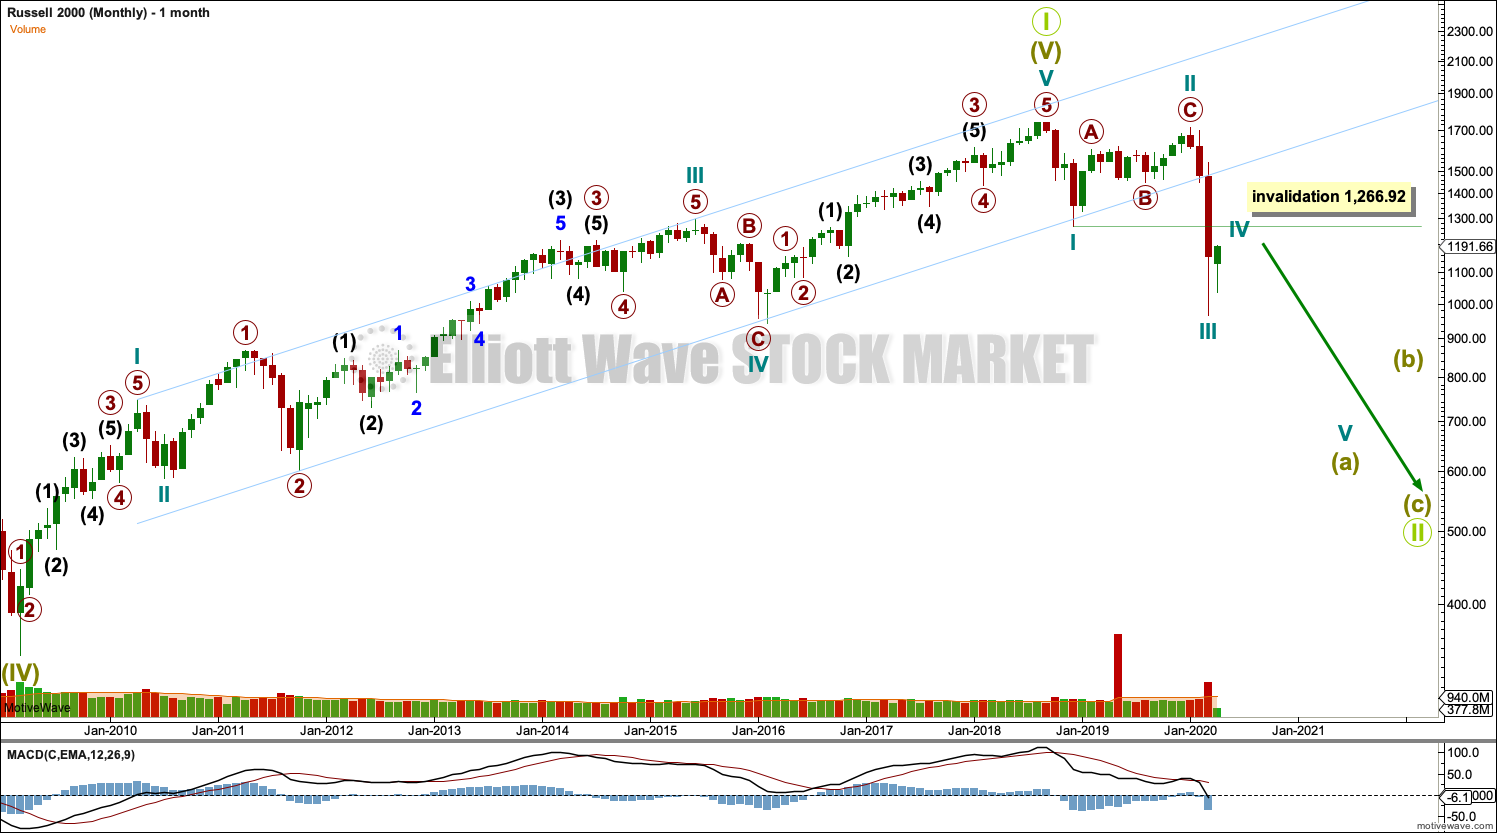 Russell 2000 Monthly 2020